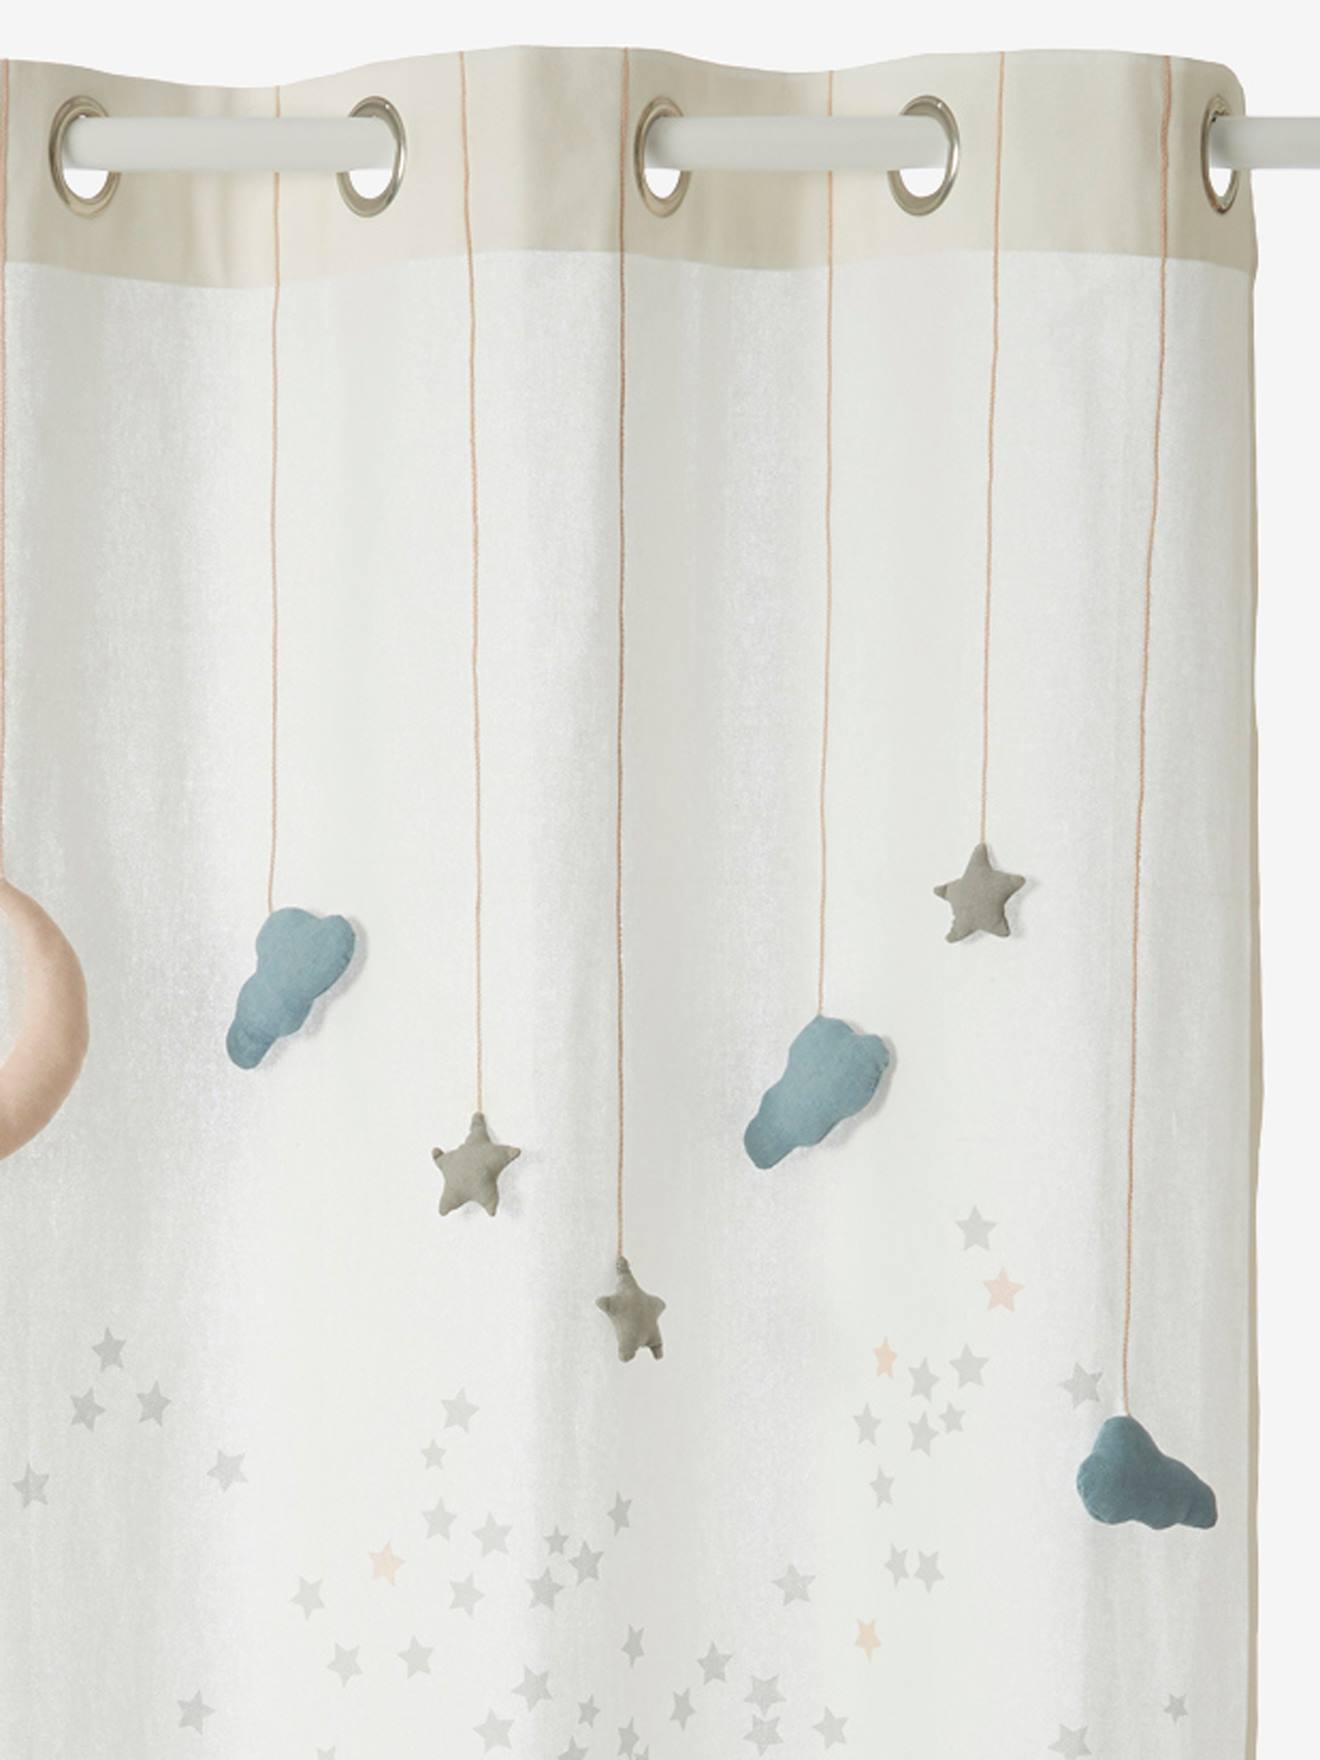 Sheer Curtain Like A Star Theme White Light Solid With Design Bedding Decor Vertbaudet